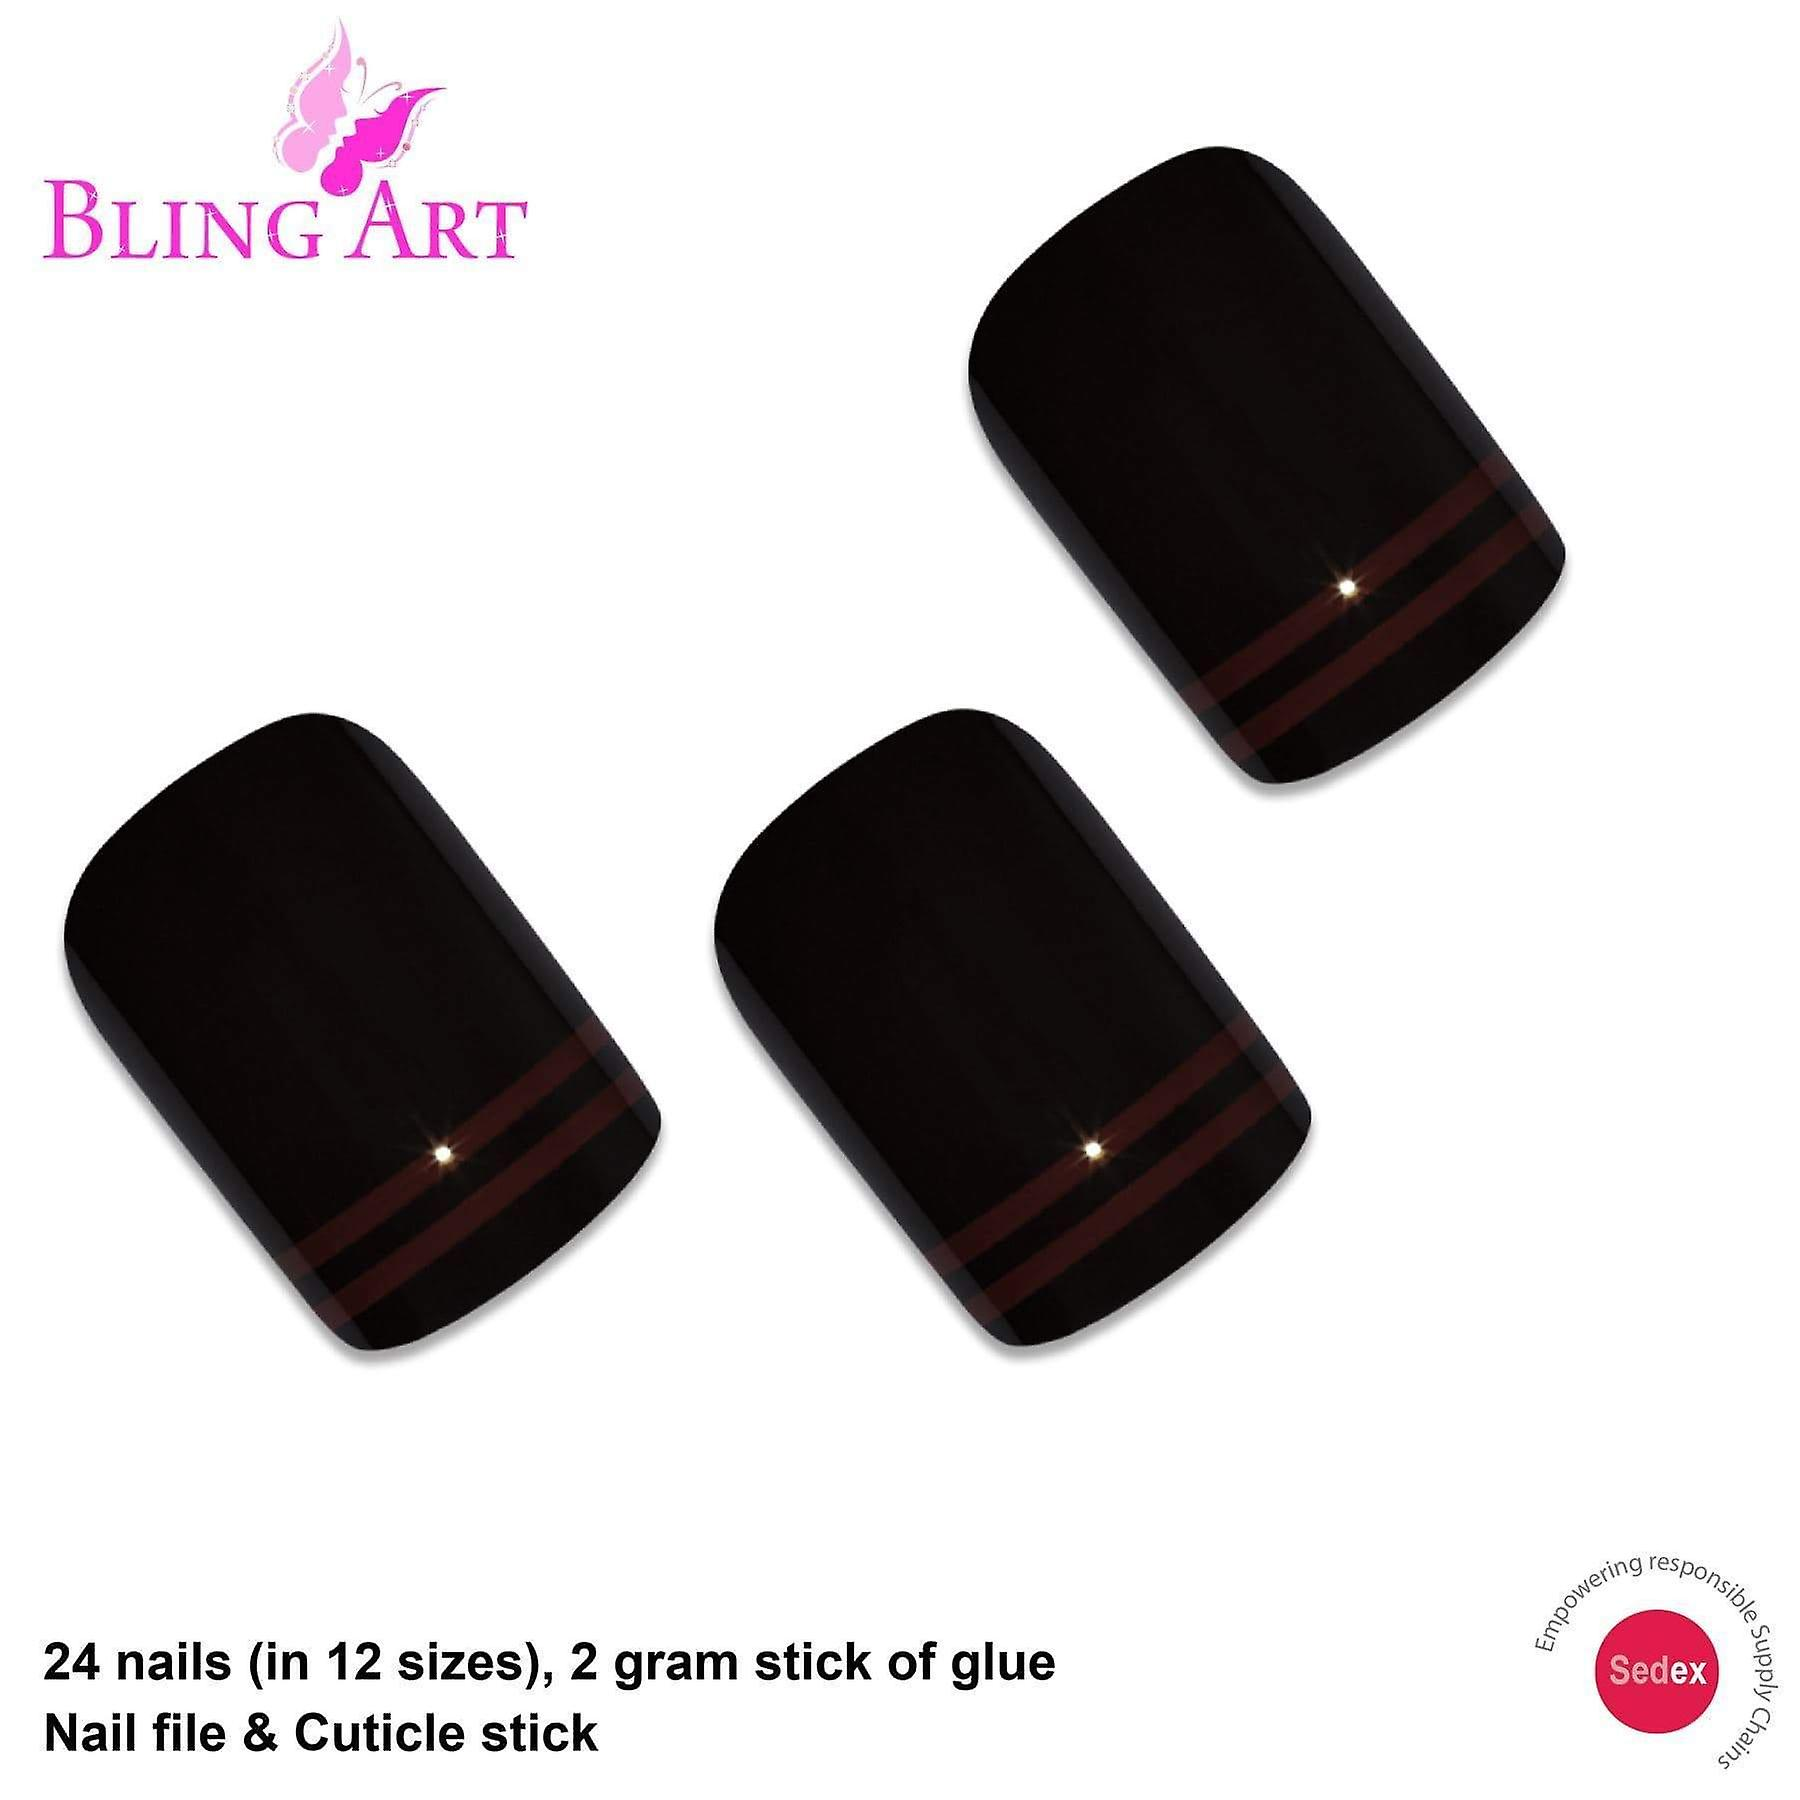 False nails by bling art black red glossy french squoval 24 fake medium tips